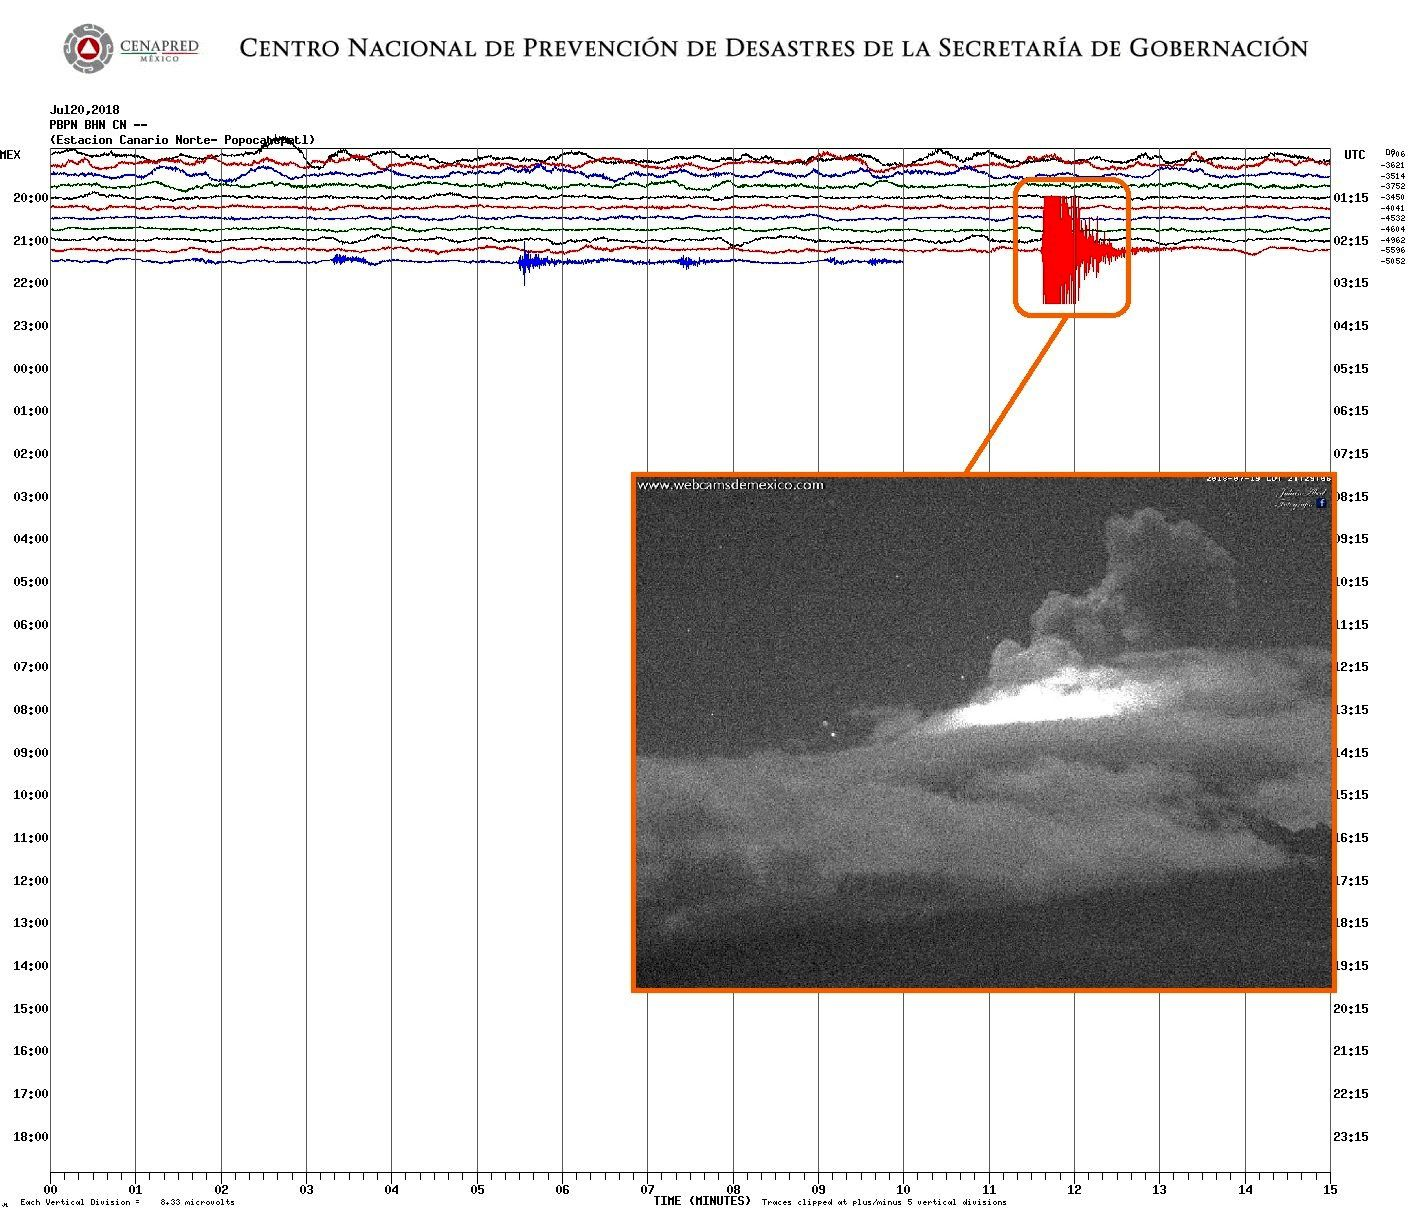 Popocatépetl - 19.07.2018 / 21h30 approx - earthquake and explosion - Doc.Cenapred